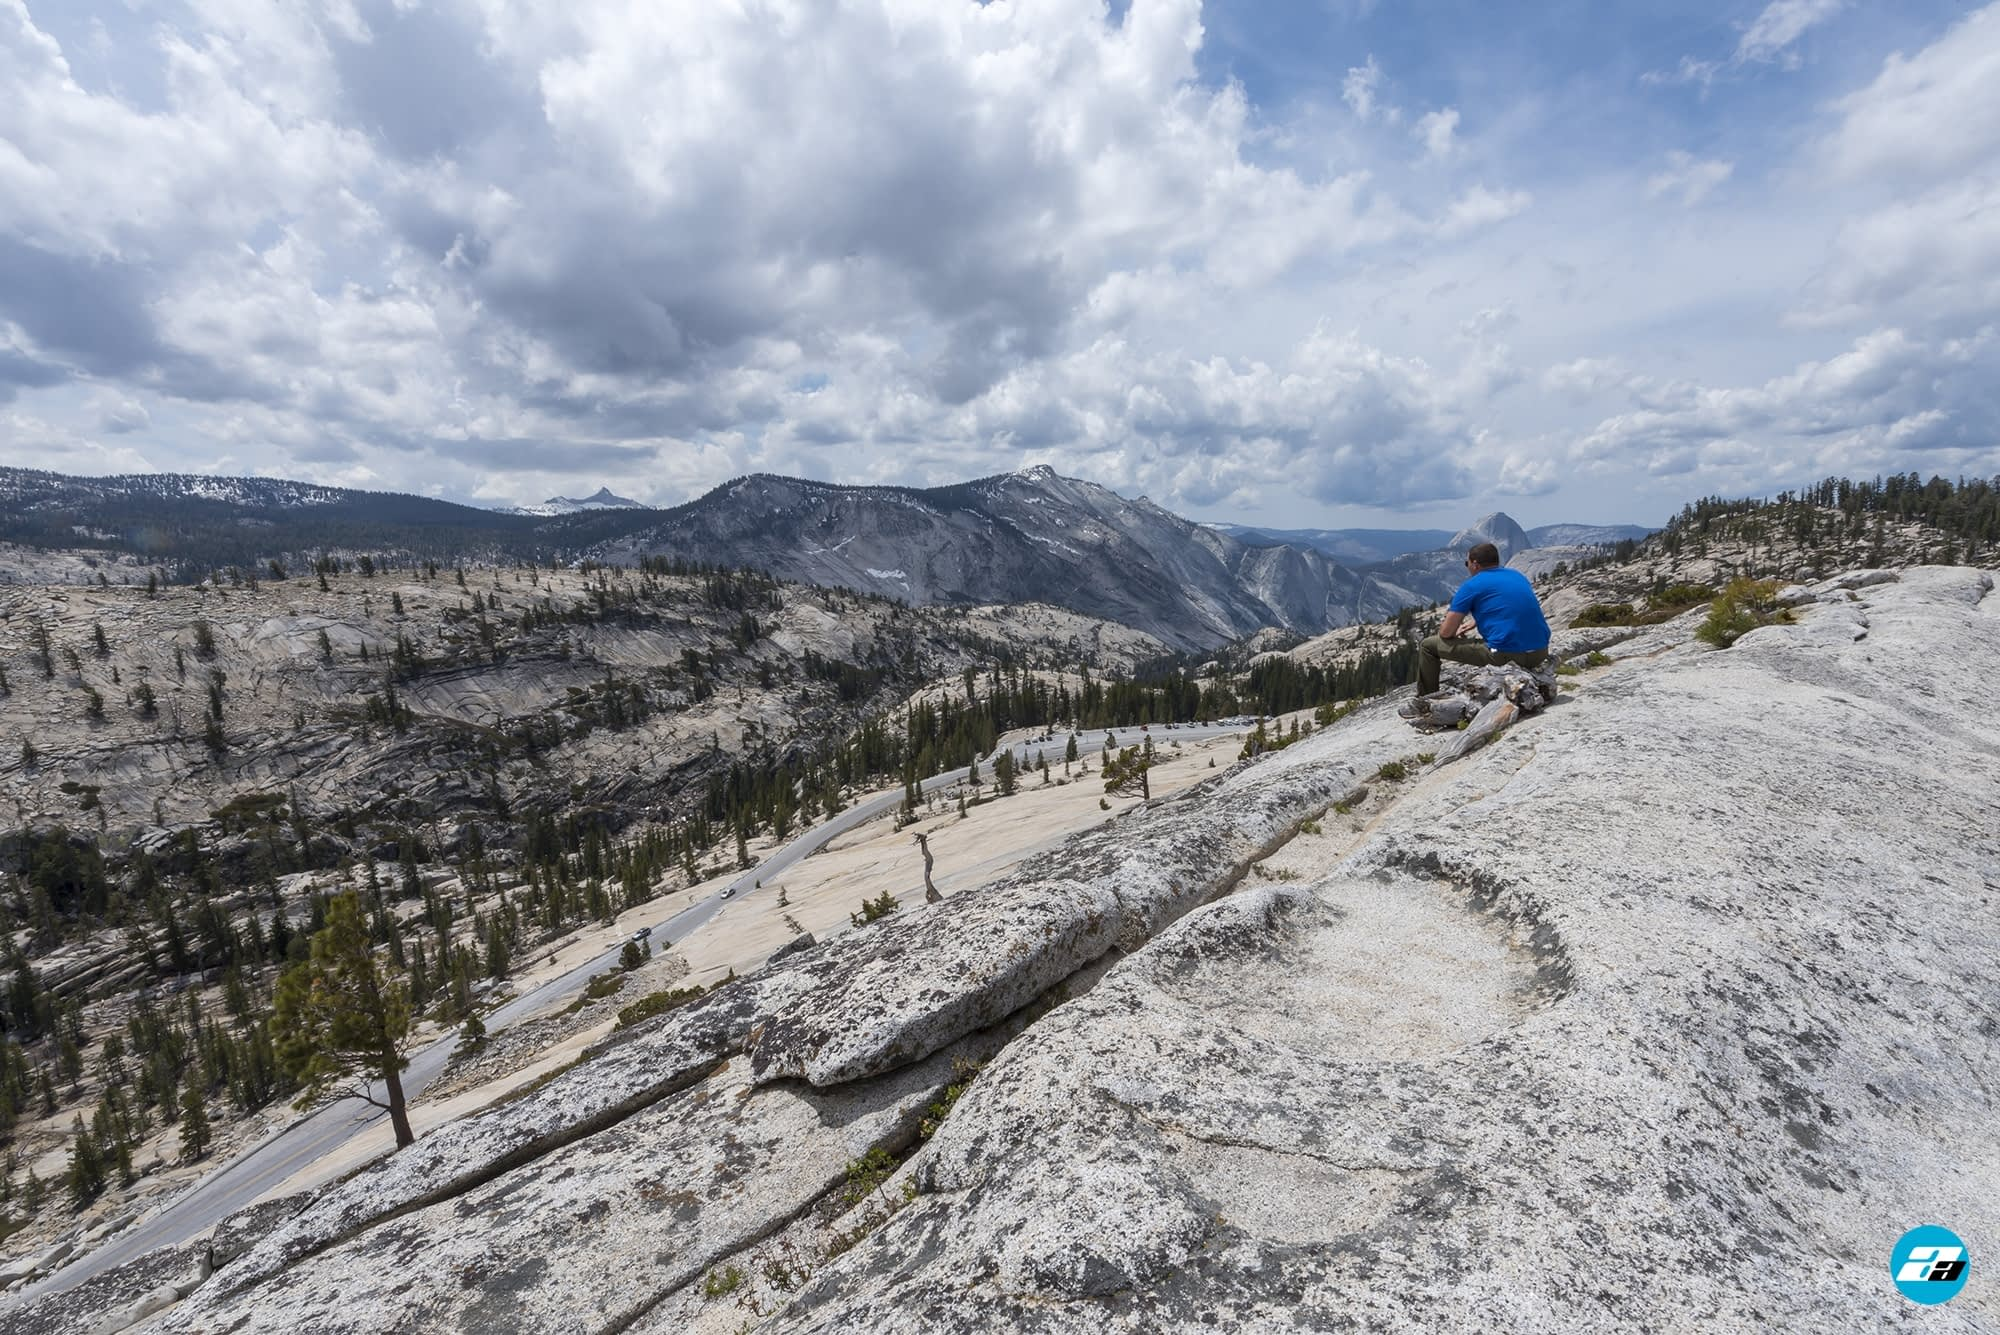 Yosemite National Park, California, USA. Landscape. Explorer. Solitude. Mountain View. Olmsted Point